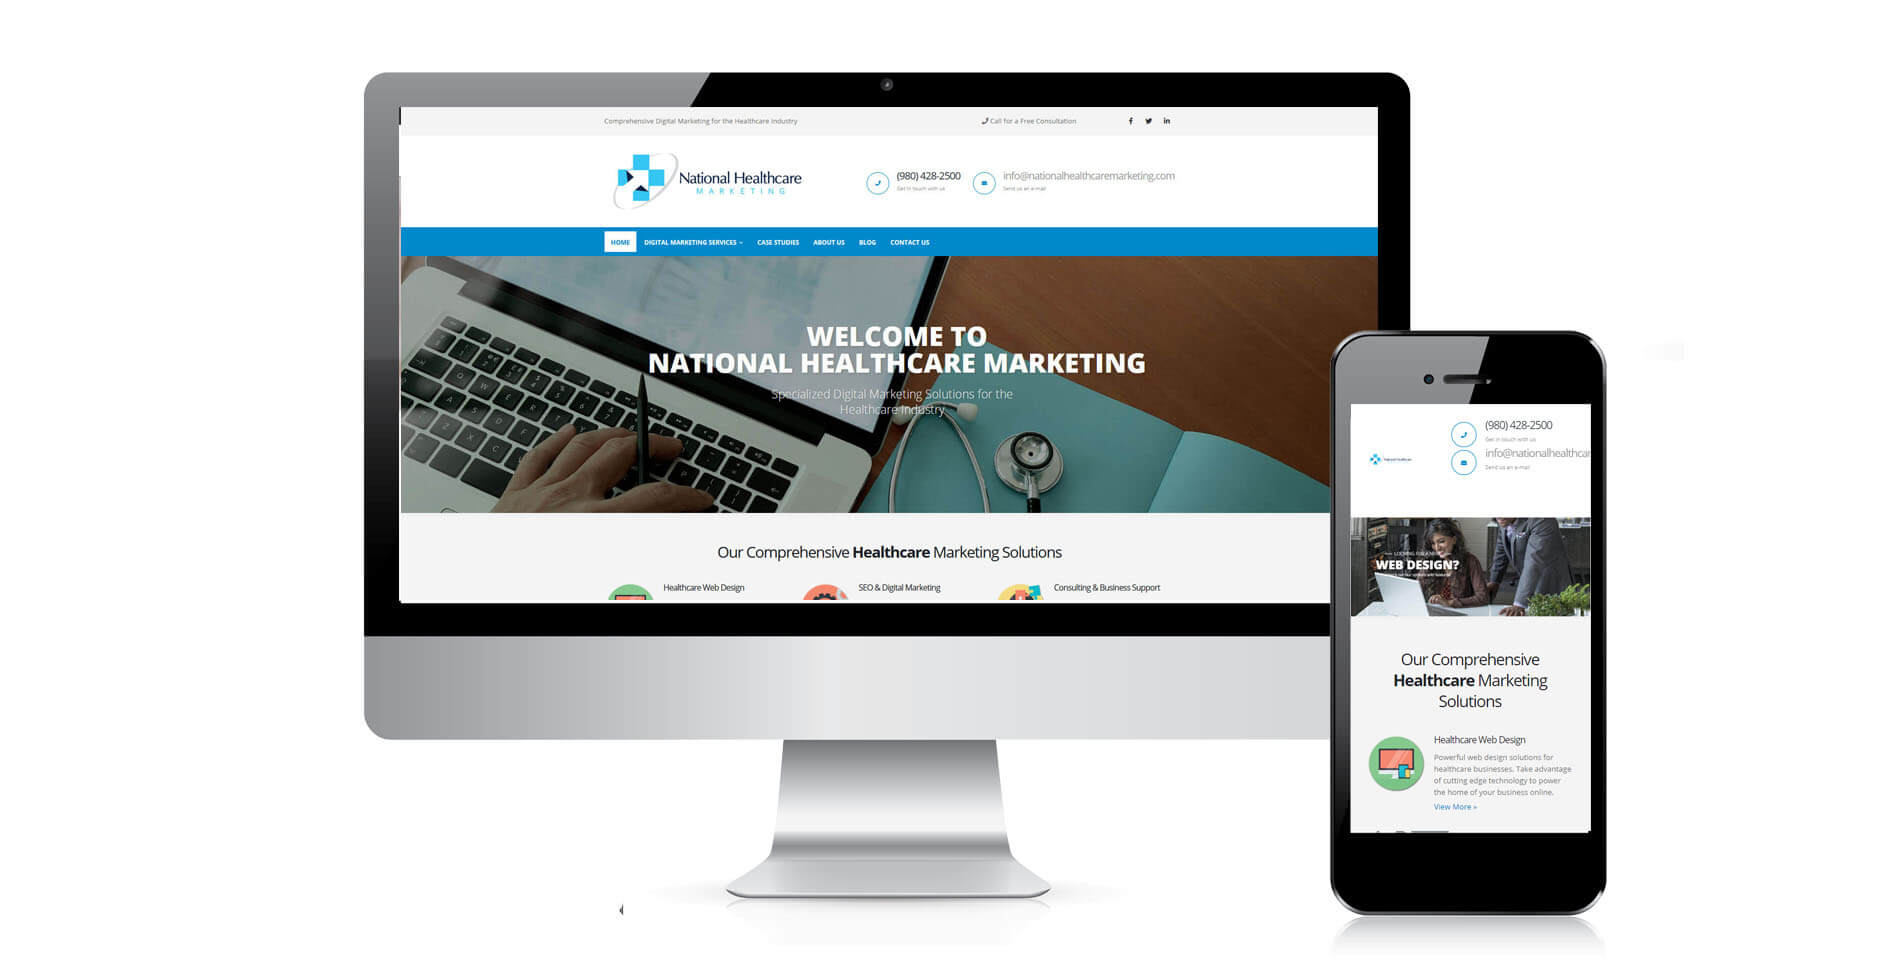 An image of the responsive design of National Healthcare Marketing, website created by Not Fade Away Marketing